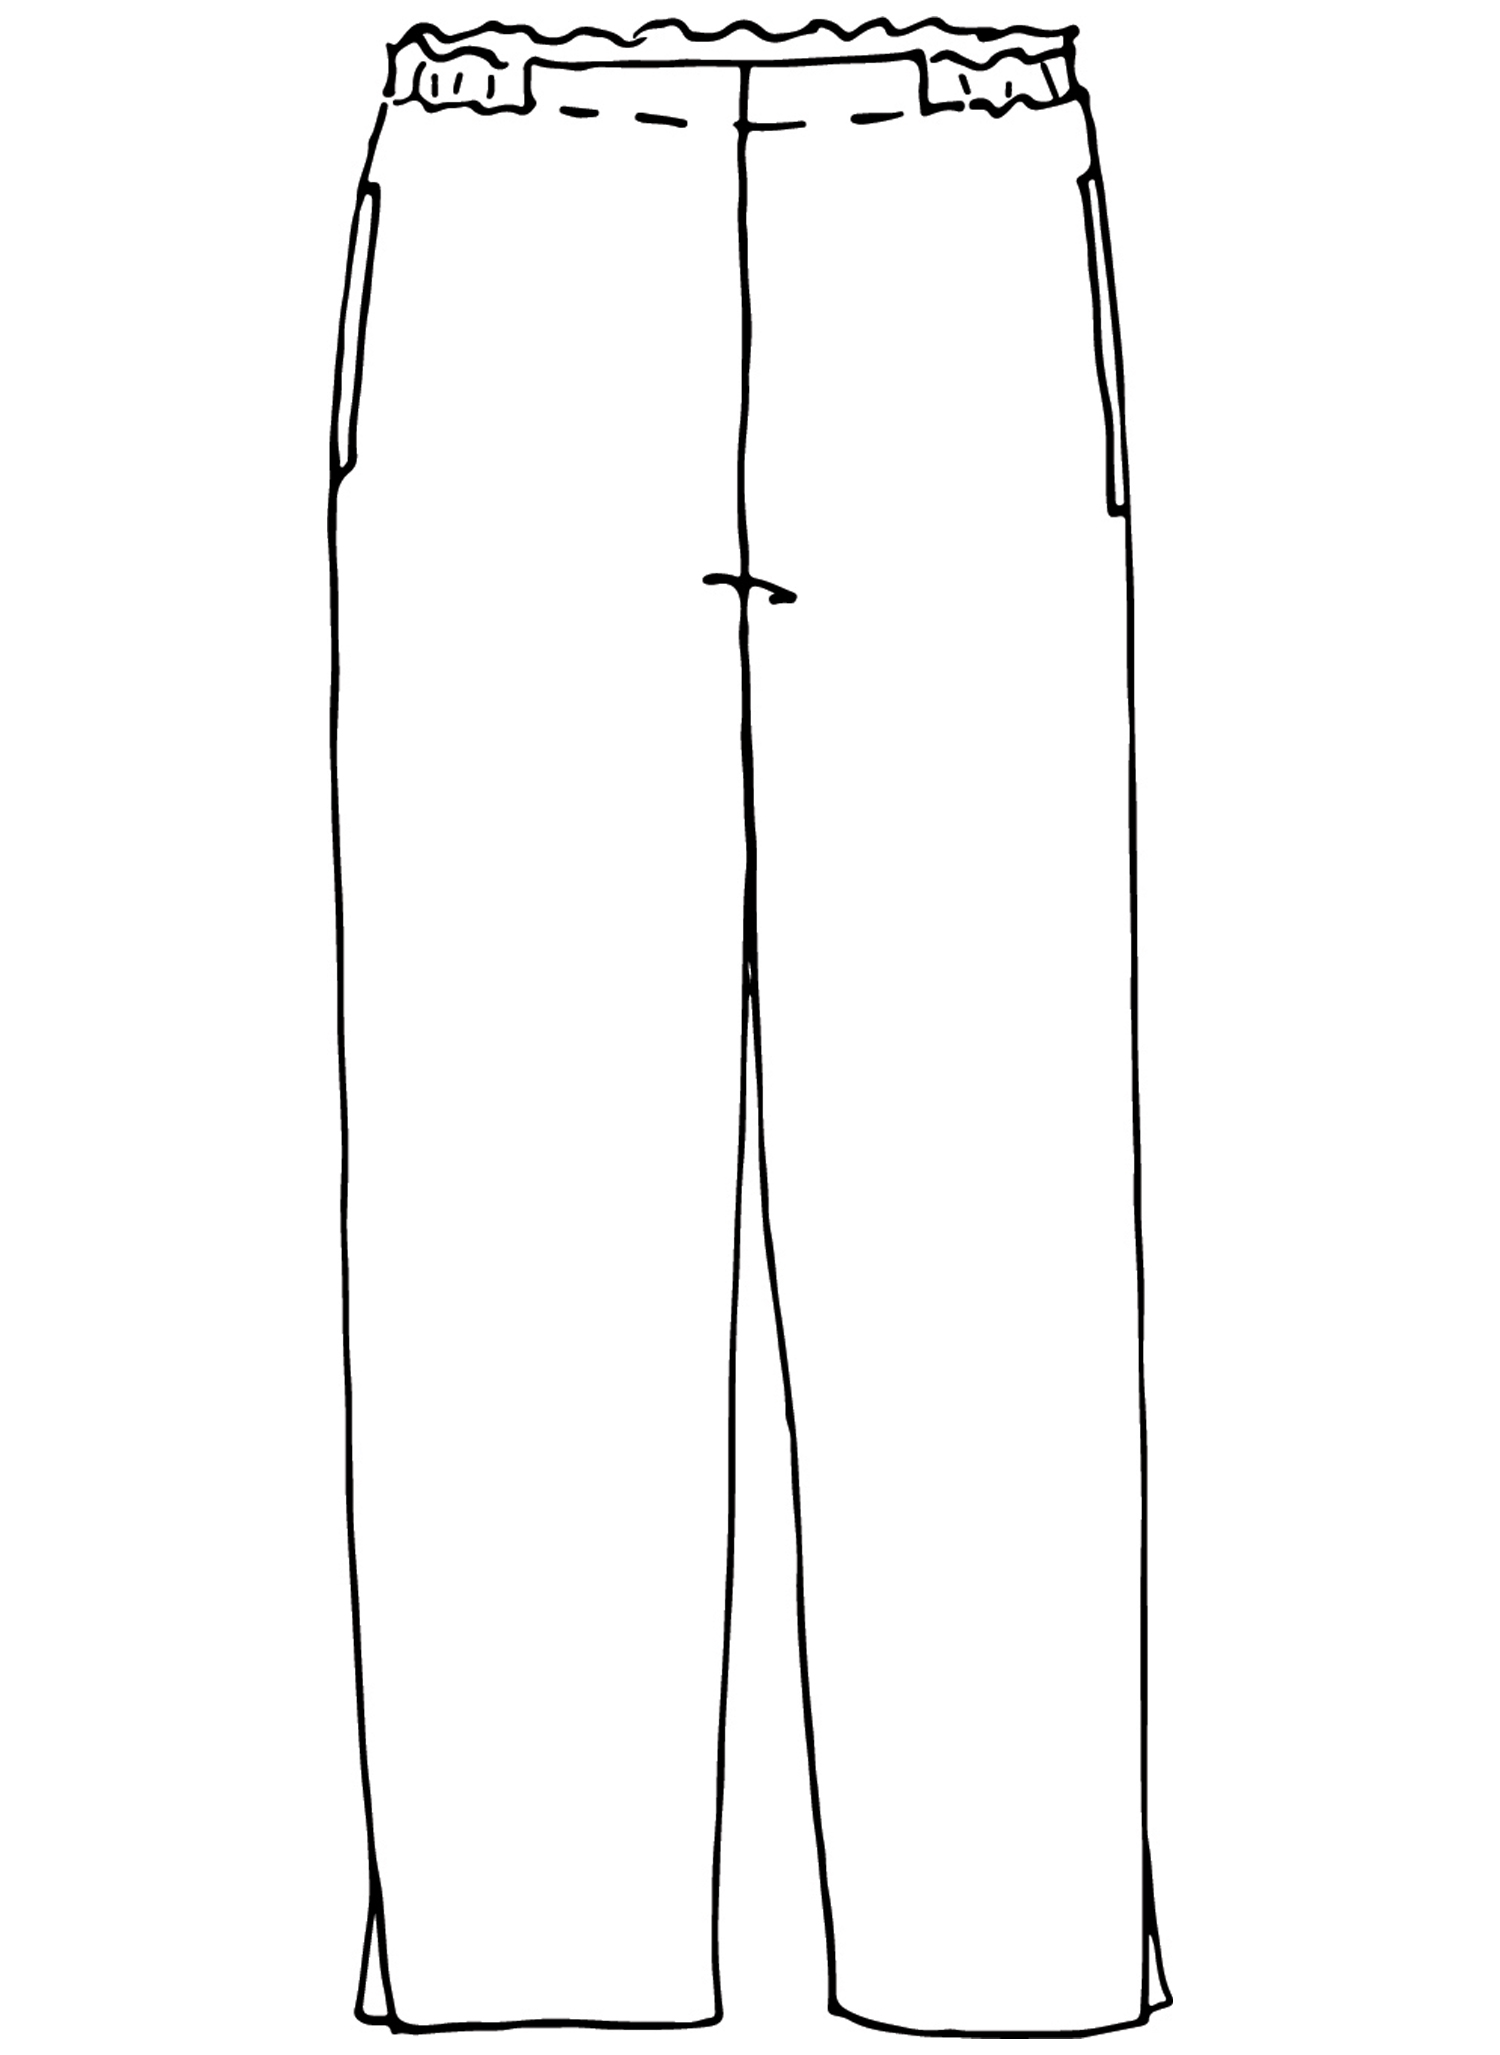 Pocketed Ankle Pant sketch image